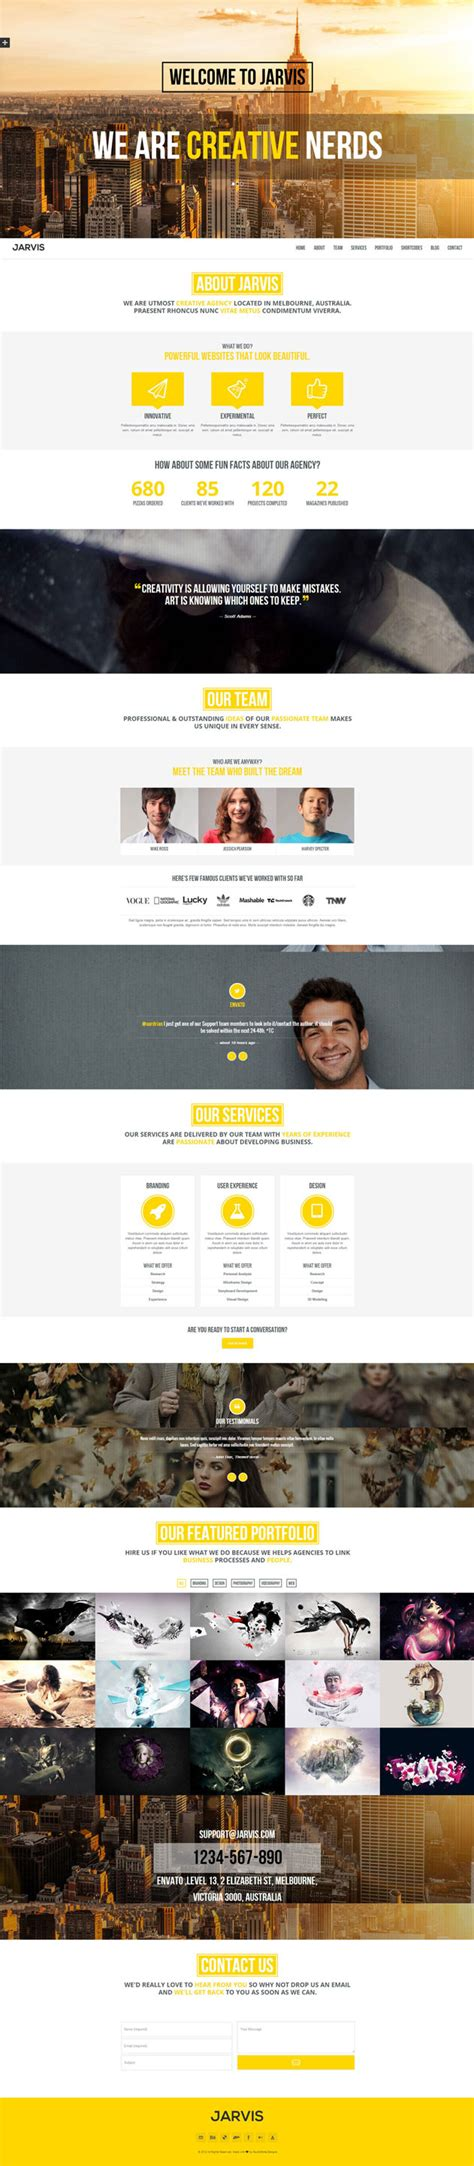 themeforest jarvis jarvis one page parallax theme